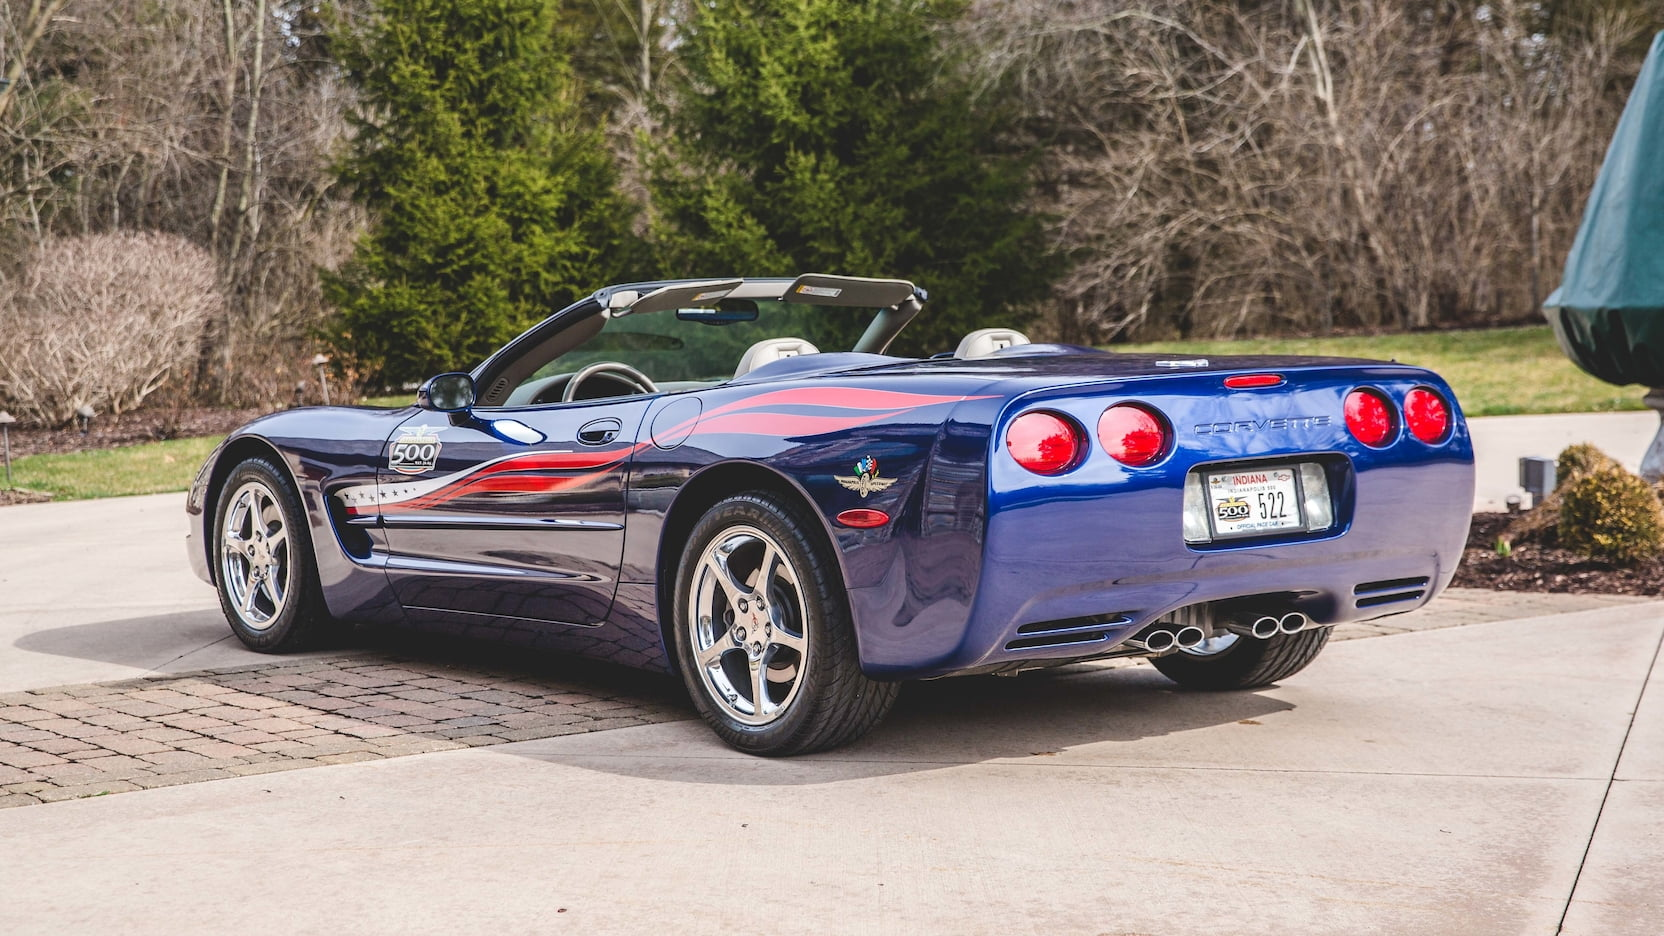 2004 Chevrolet Corvette Pace Car Version 3